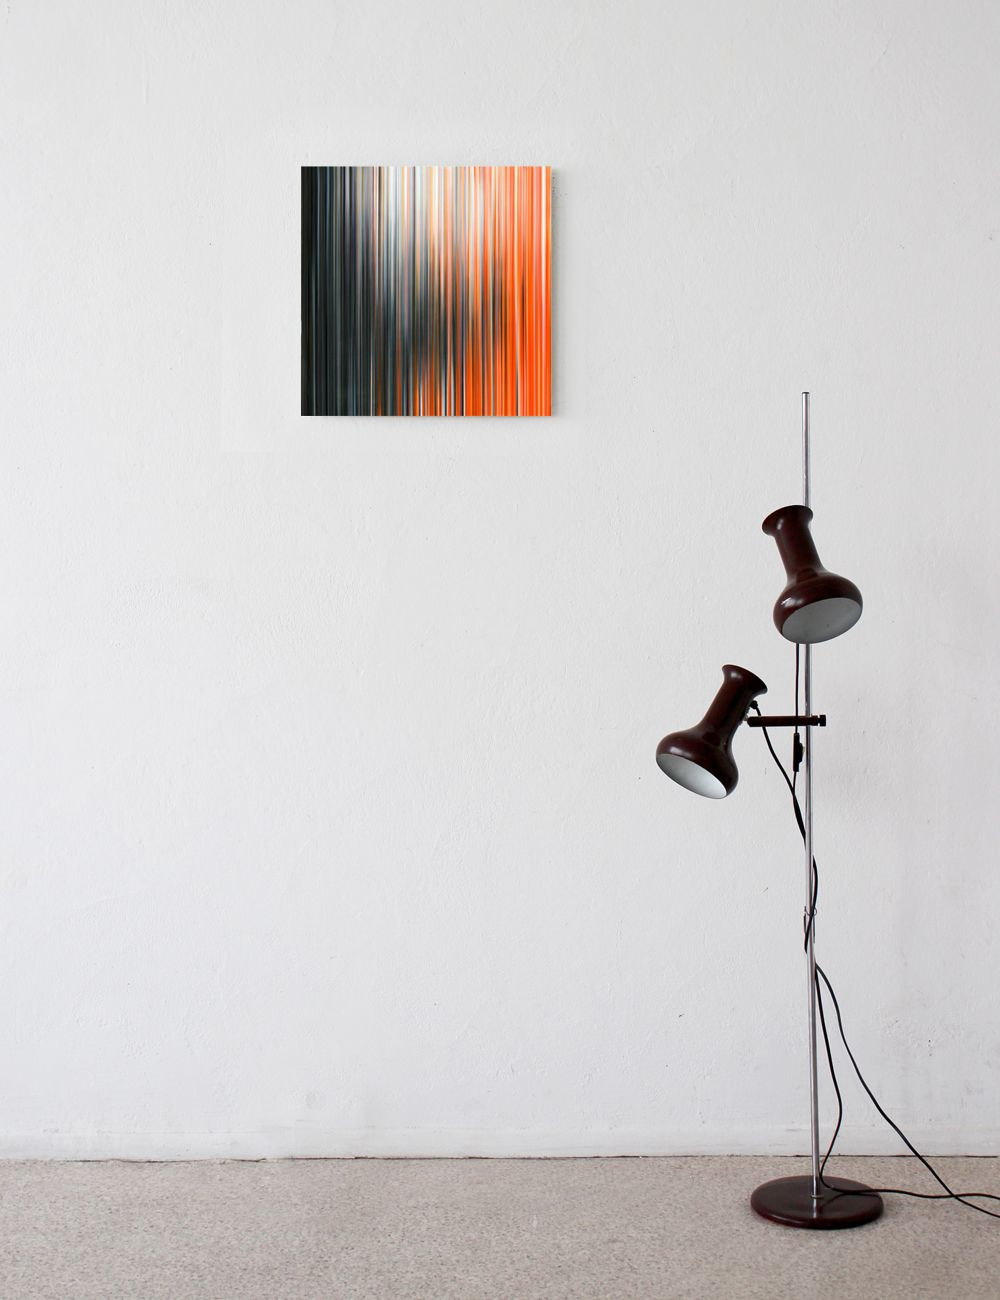 Light'n'Lines No.15 (BlackWhiteOrange),Doris Marten,Peinture contemporaine, detail 1